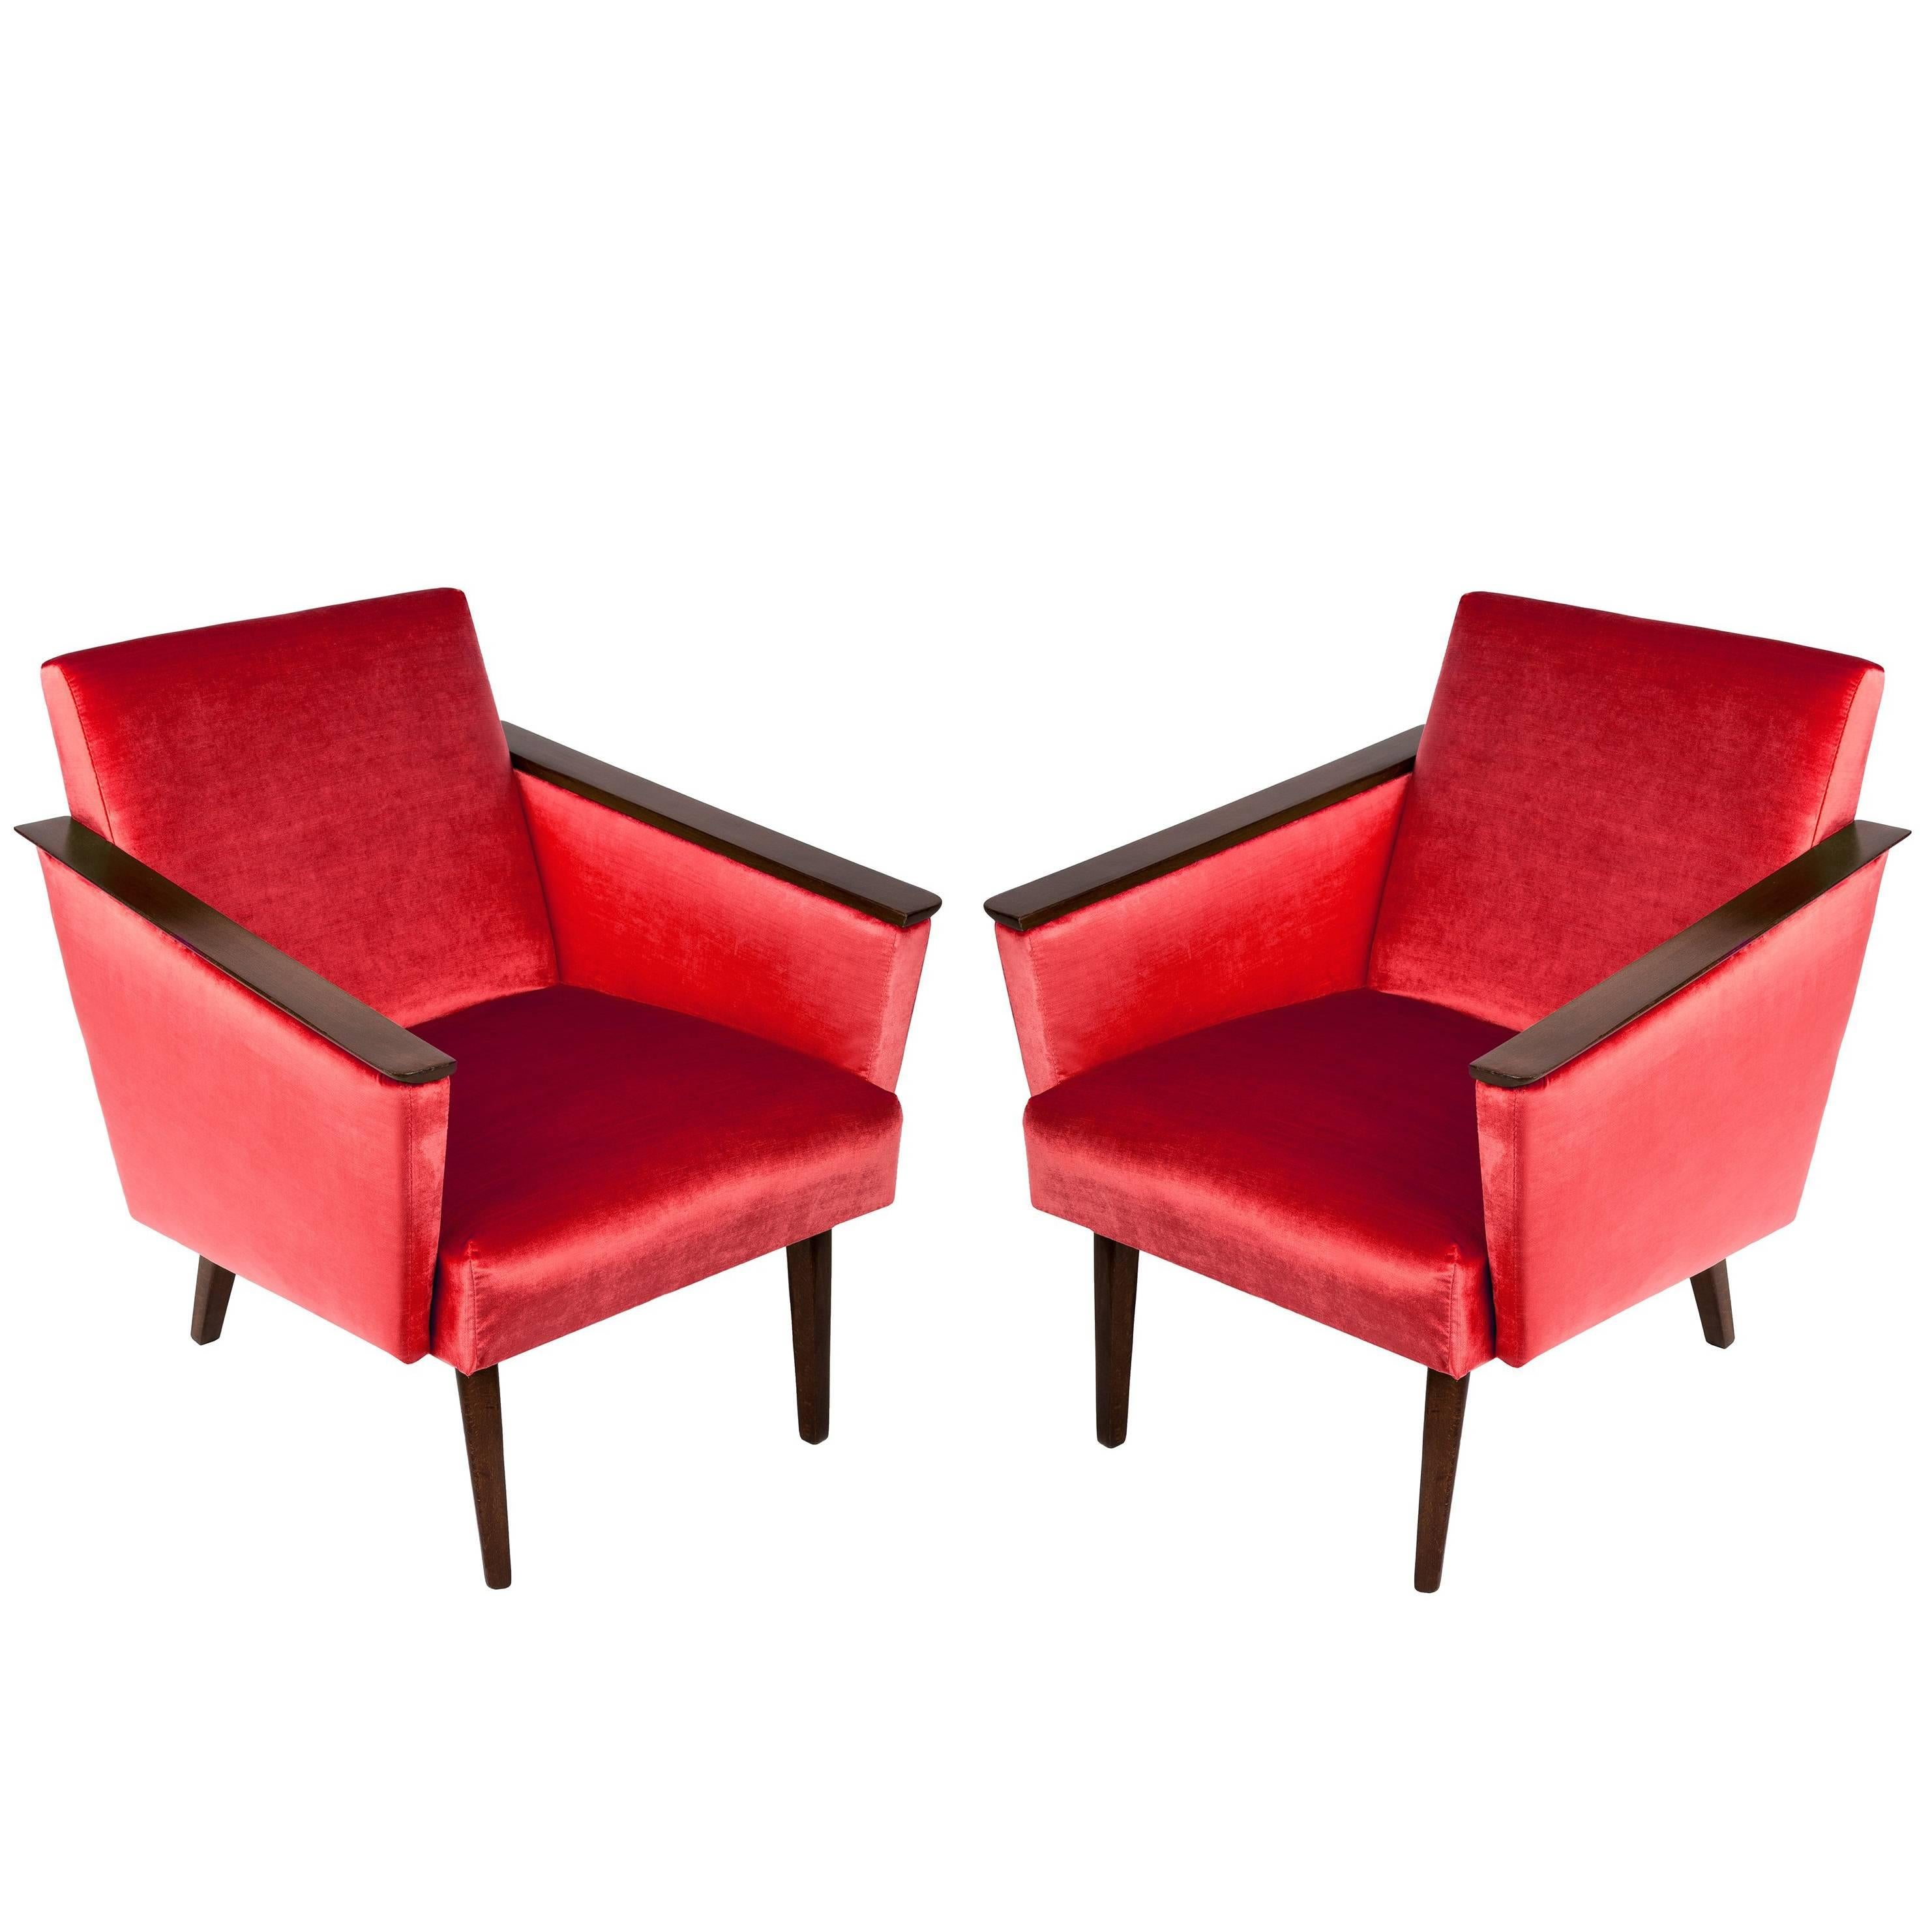 Superior Pair Of Red Armchairs, 1960s, DDR, Germany For Sale